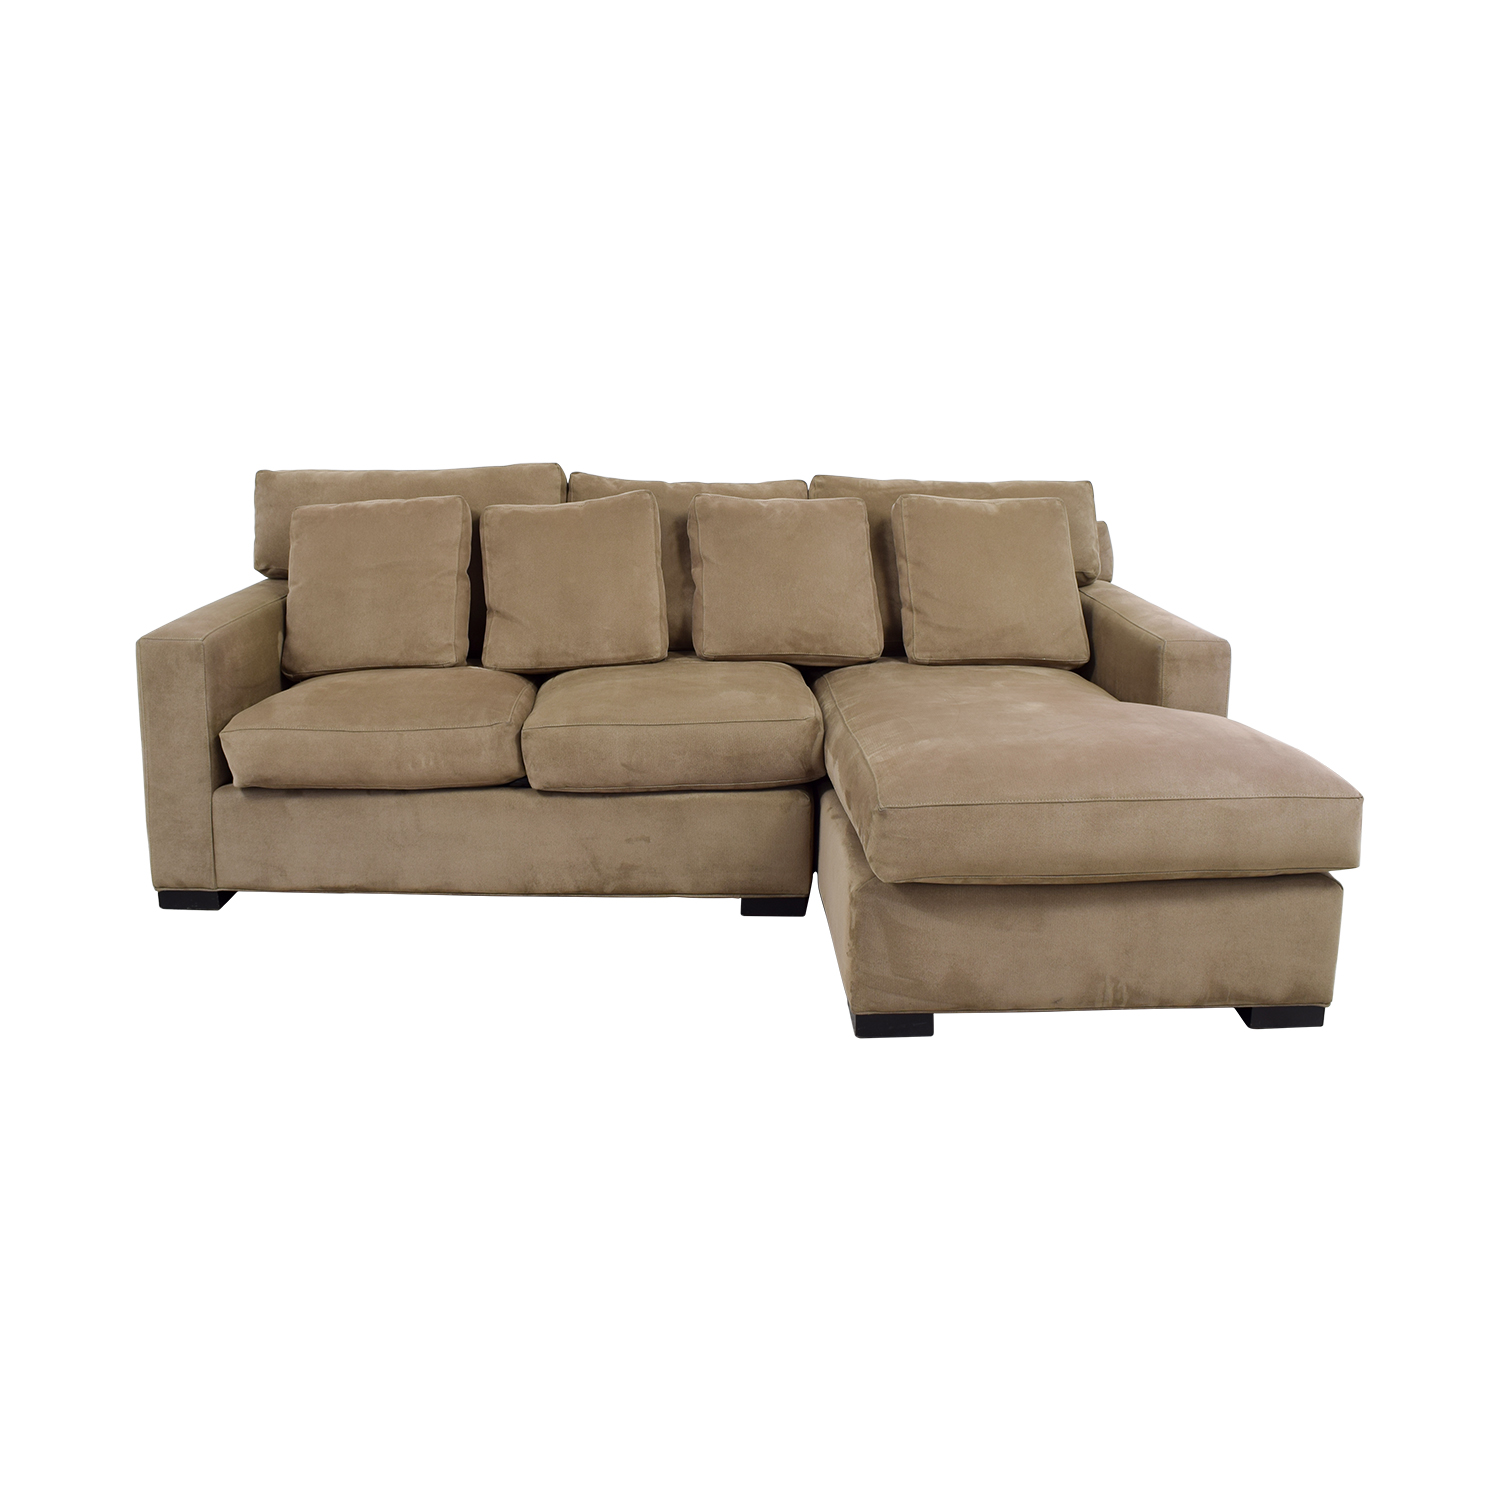 buy Crate & Barrel Axis Tan Right Arm Chaise Lounge Crate & Barrel Sofas